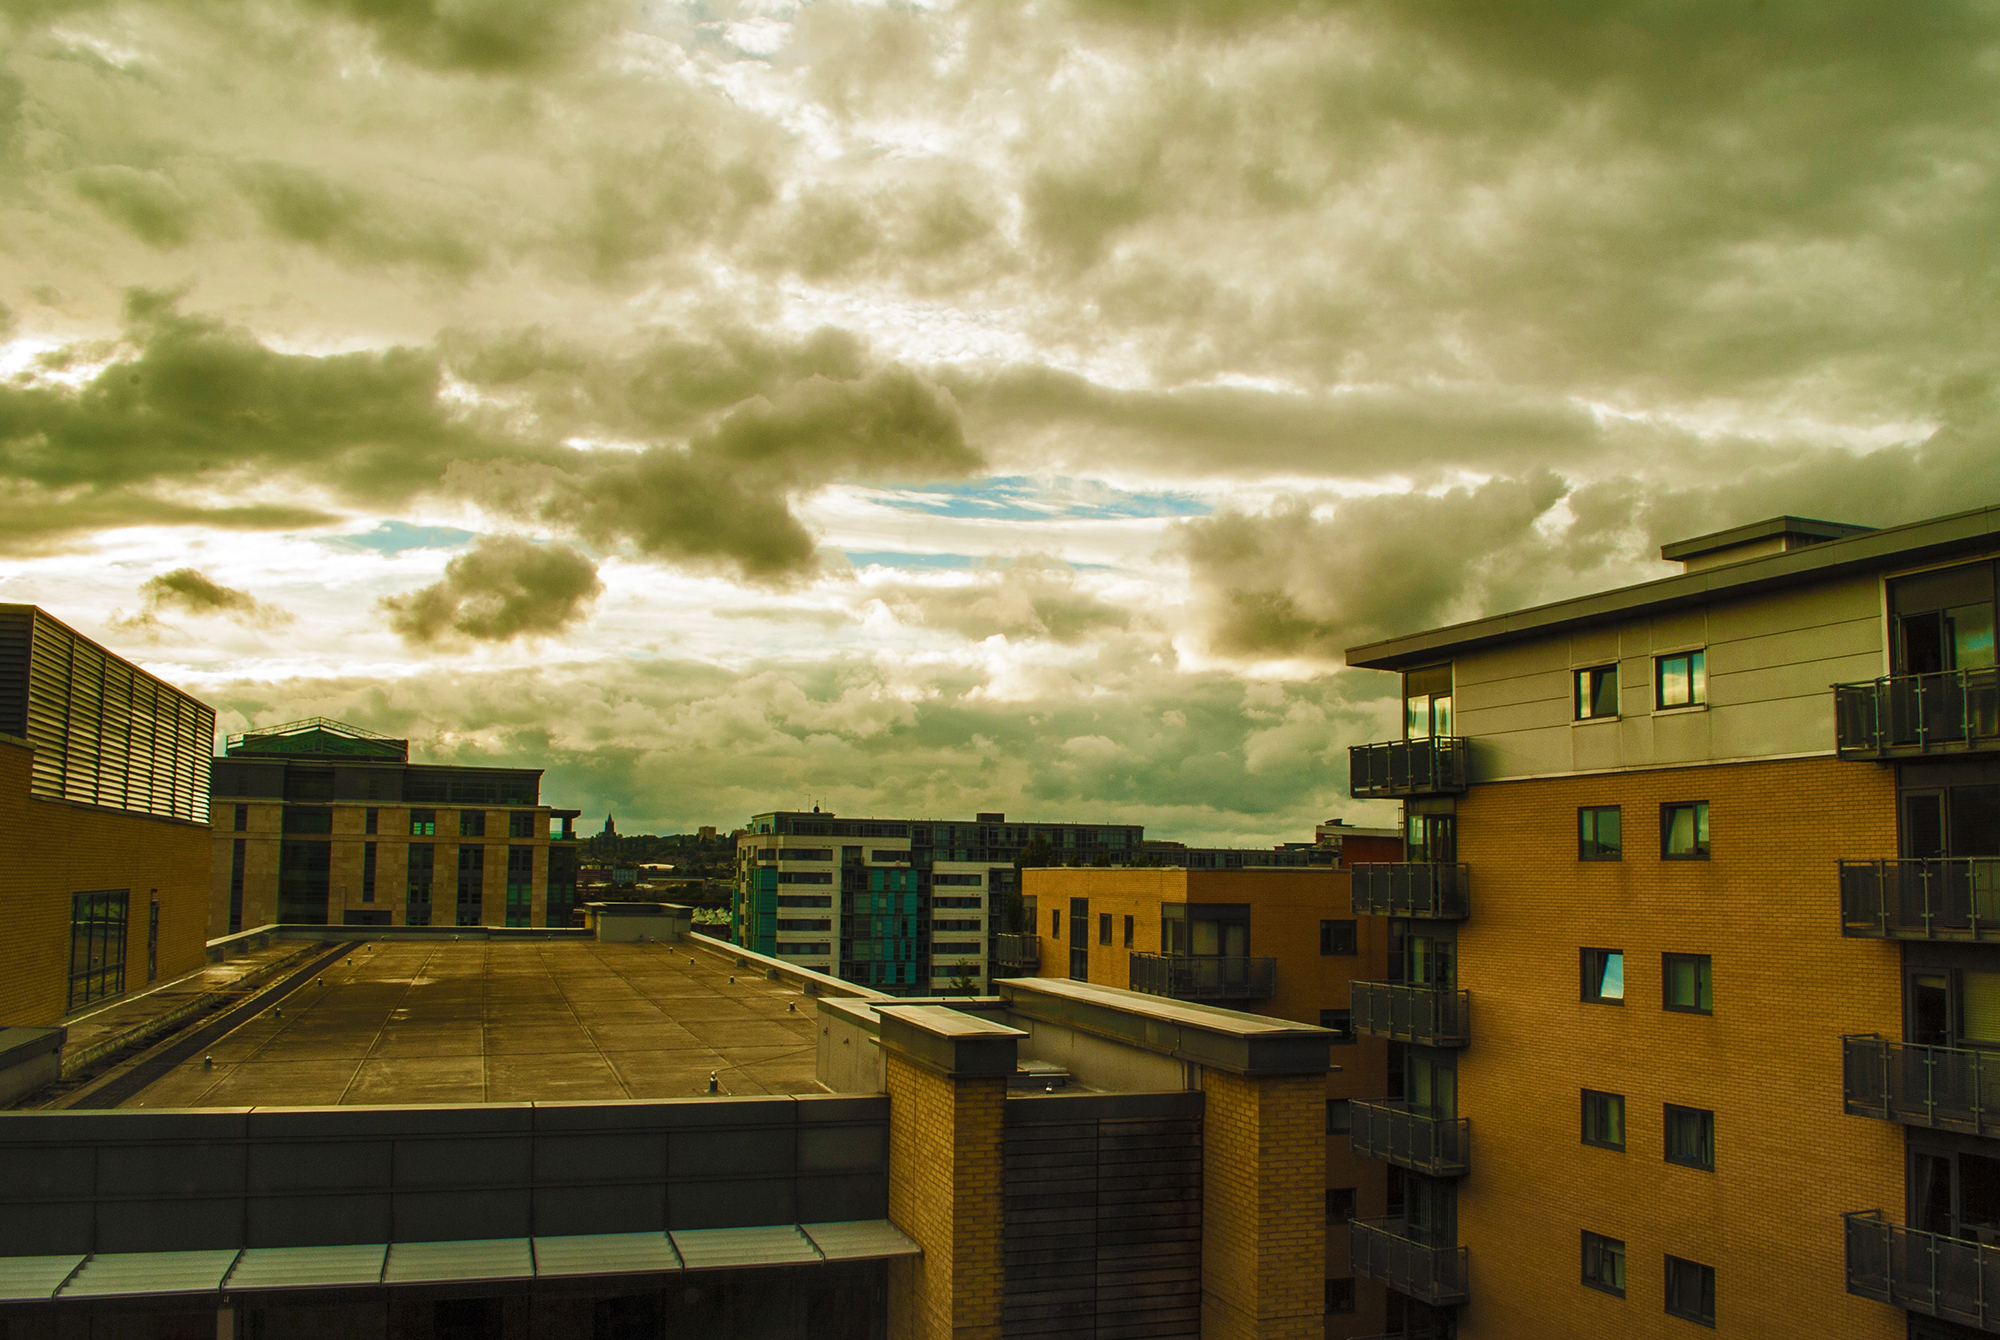 Heavenly drama unfolds as I enjoy the view of the clouds from my hotel room in Leeds, UK.